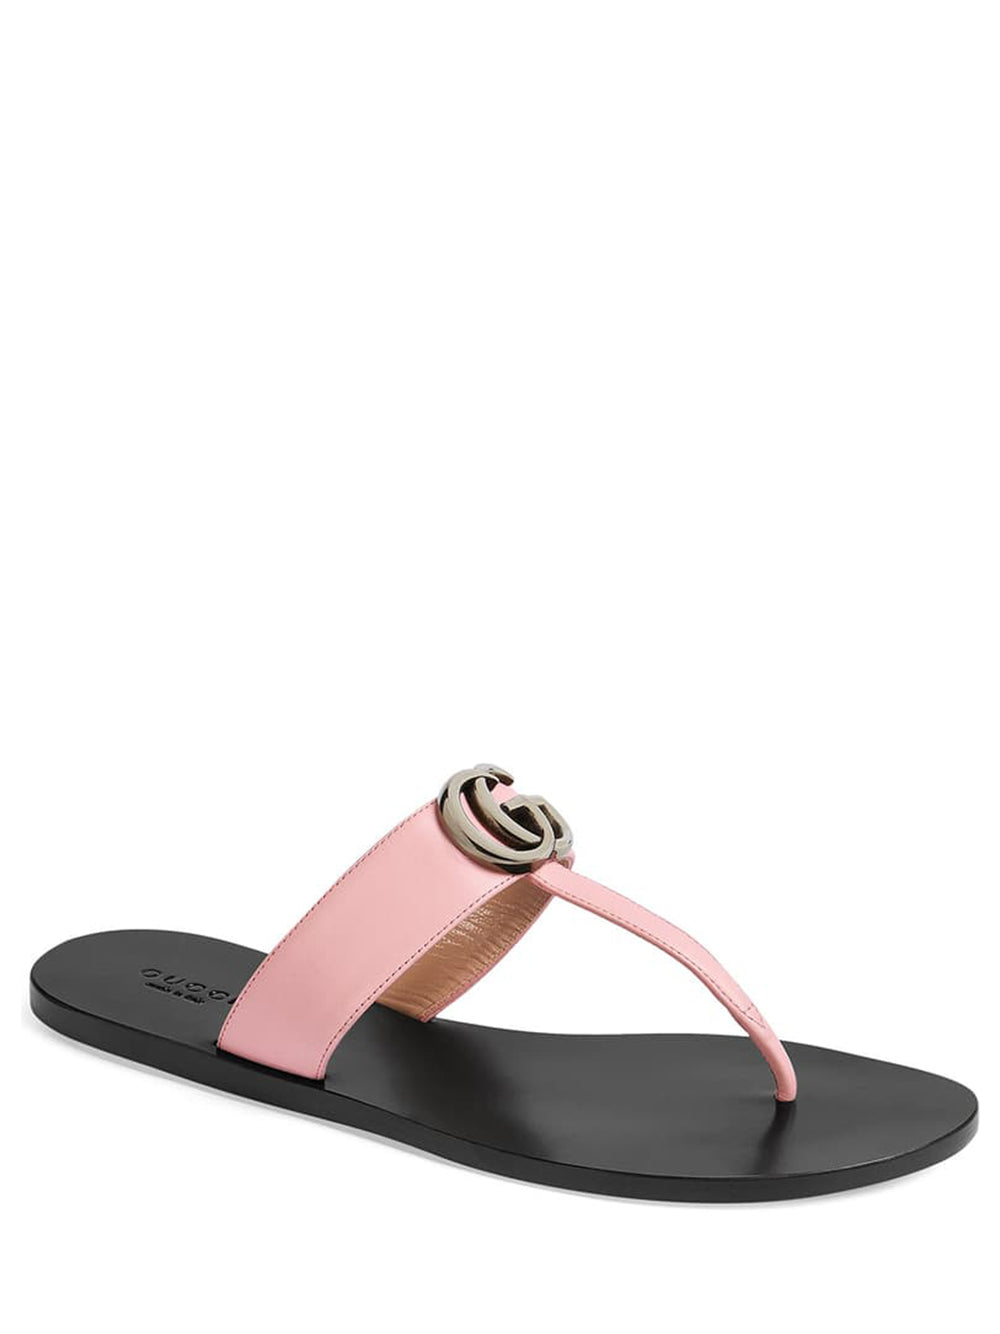 Women's Leather Thong Sandal with Double G - Pink 3/4